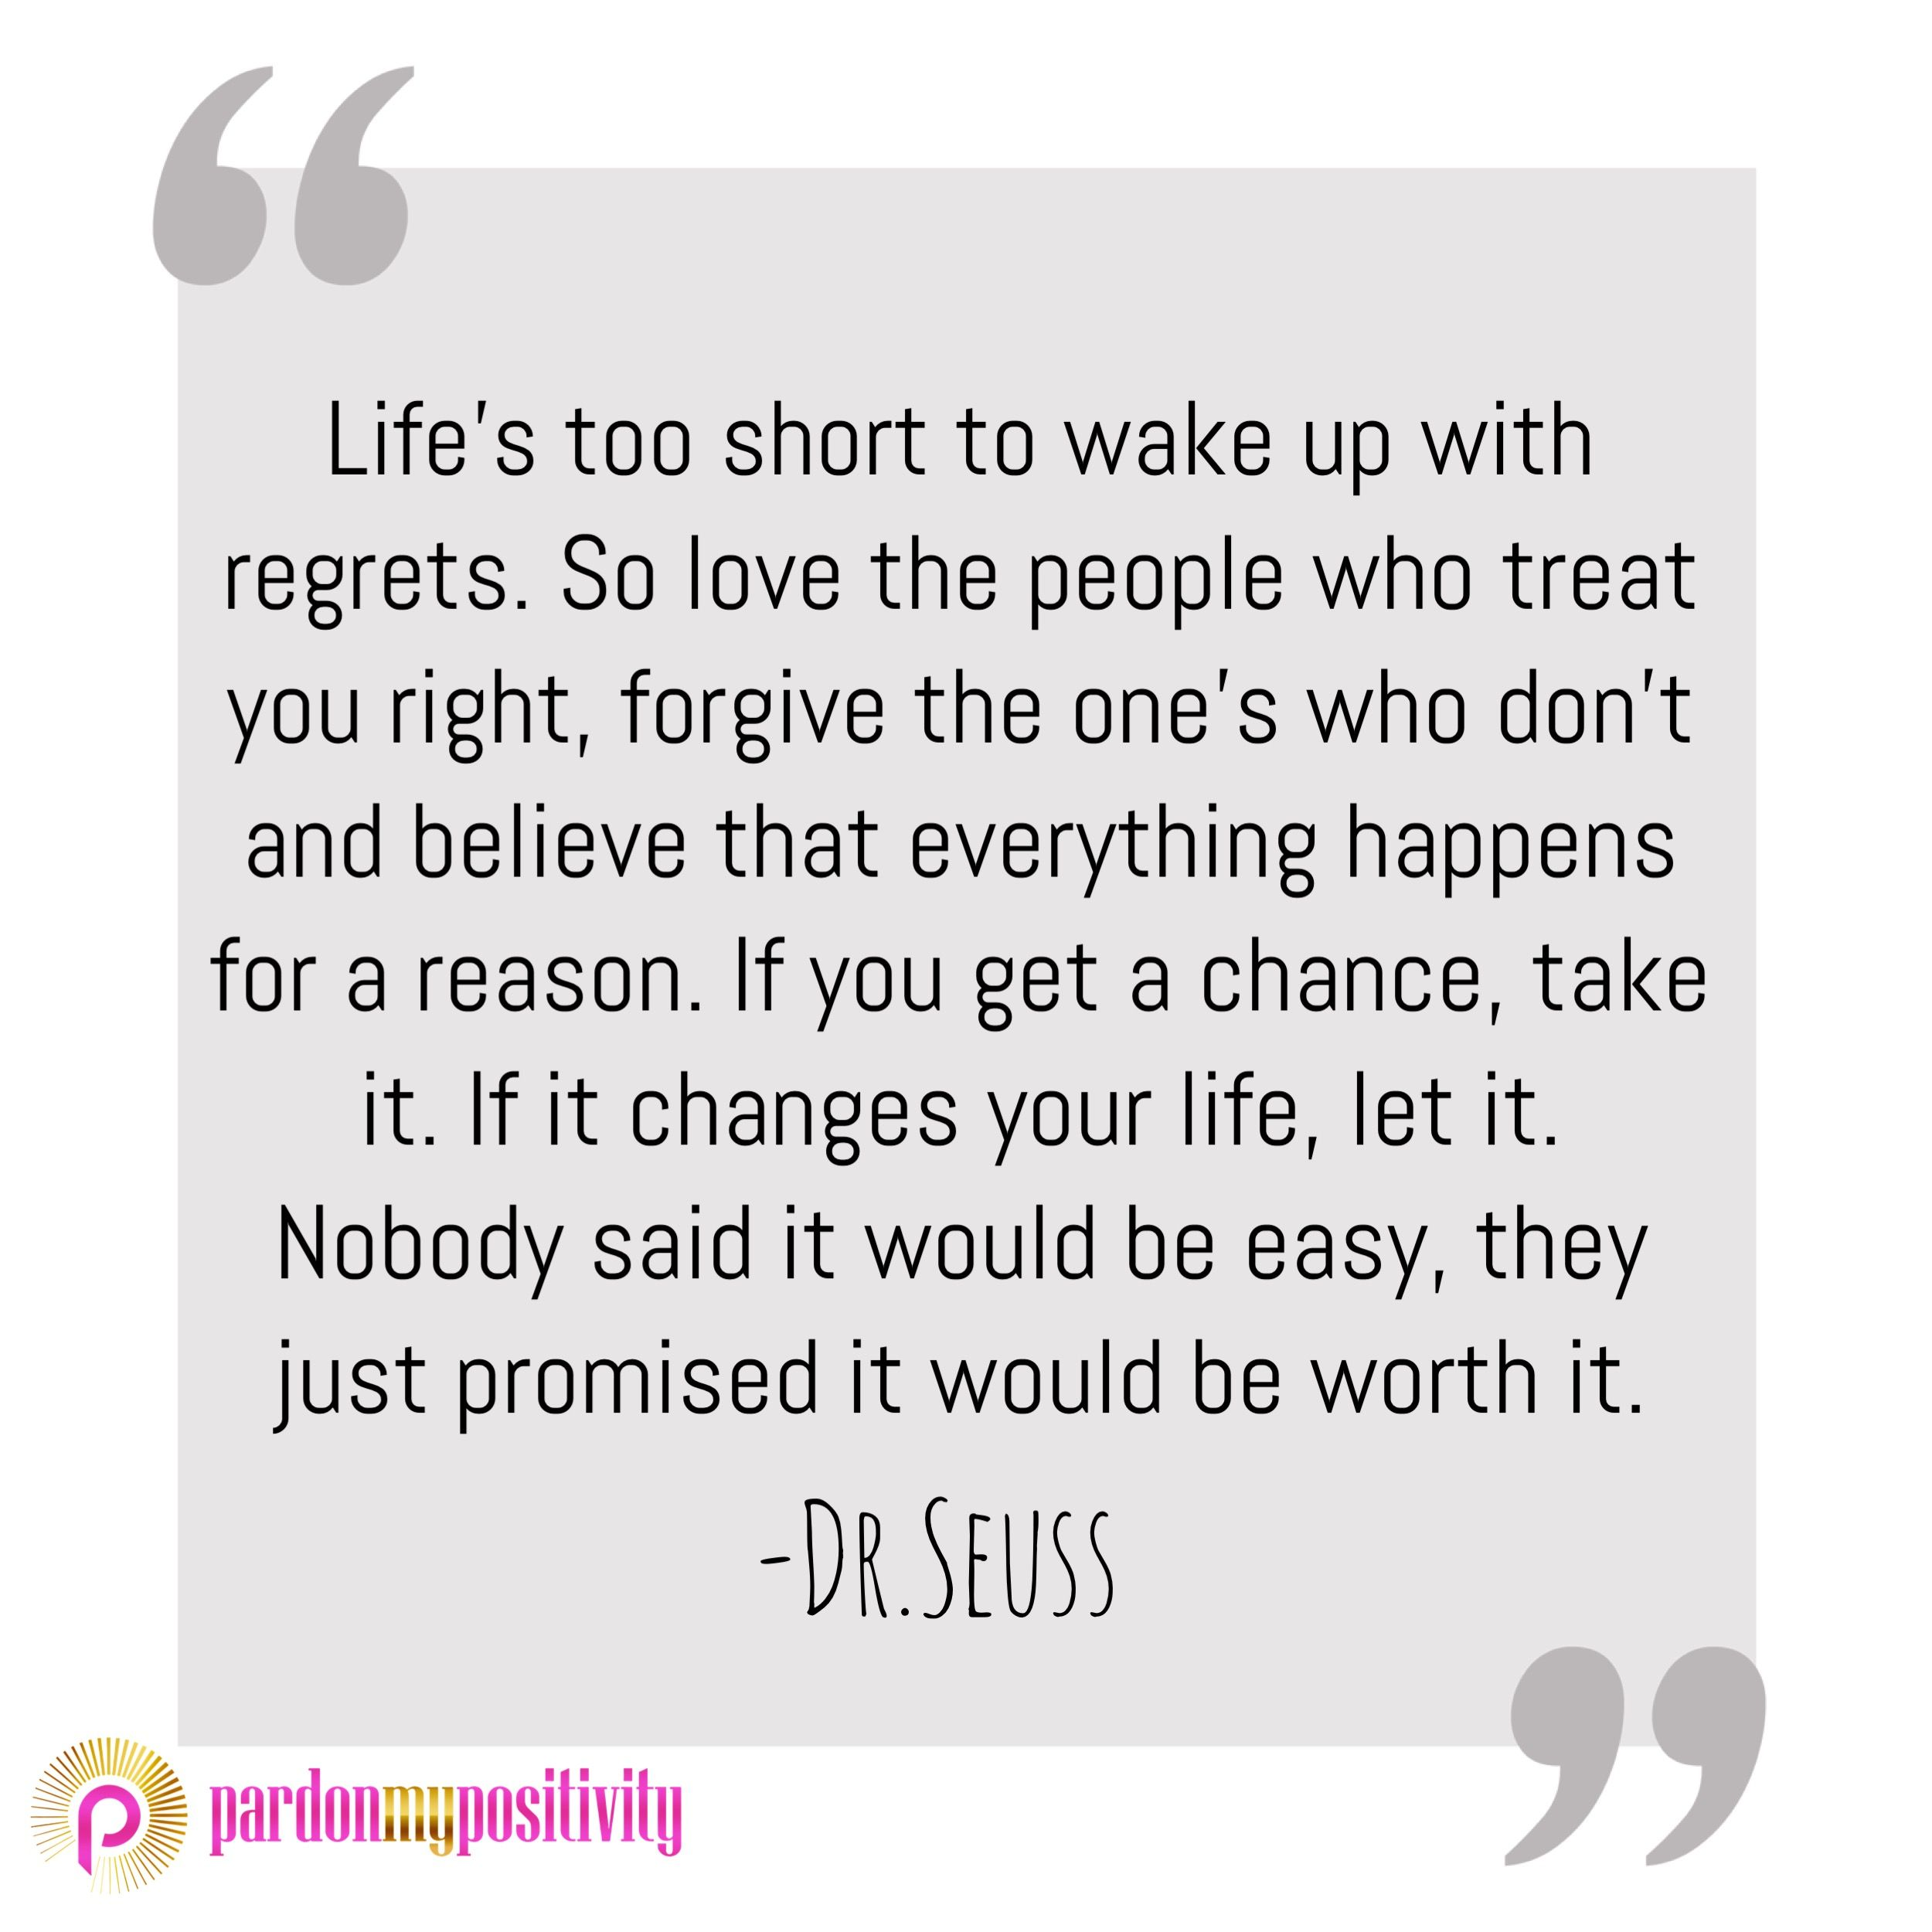 Life's Too Short To Wake Up With Regrets Dr Seuss Pinterest thumbnail